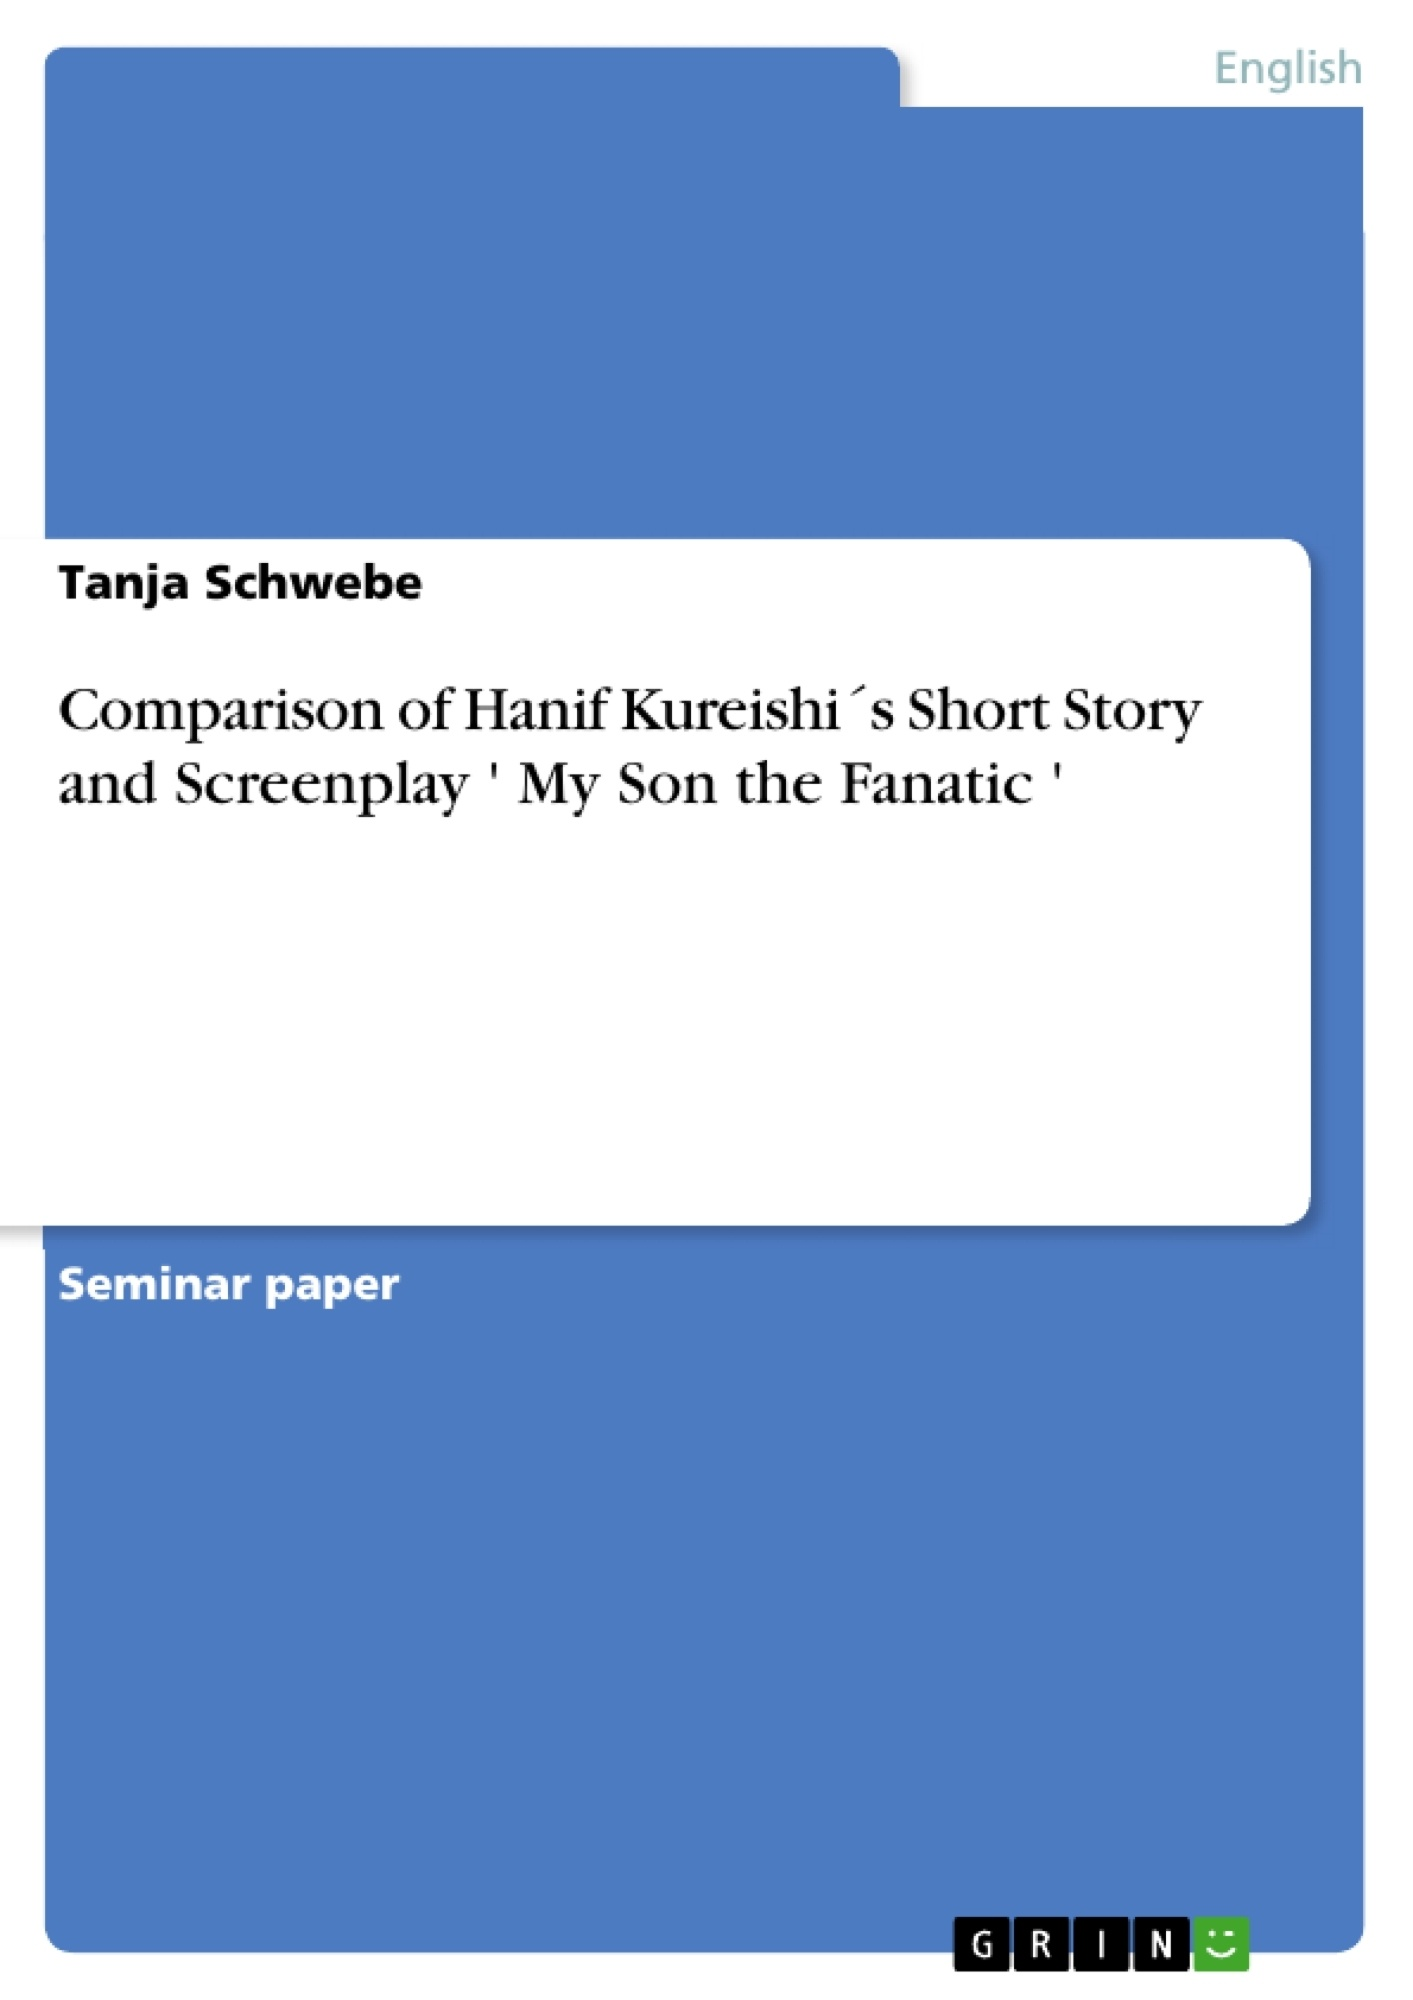 hanif kureishi my son fanatic essay 1997 my son the fanatic (based on his own short story of the same title) hanif kureishi (readers' guides to essential criticism) palgrave macmillan, 2005.